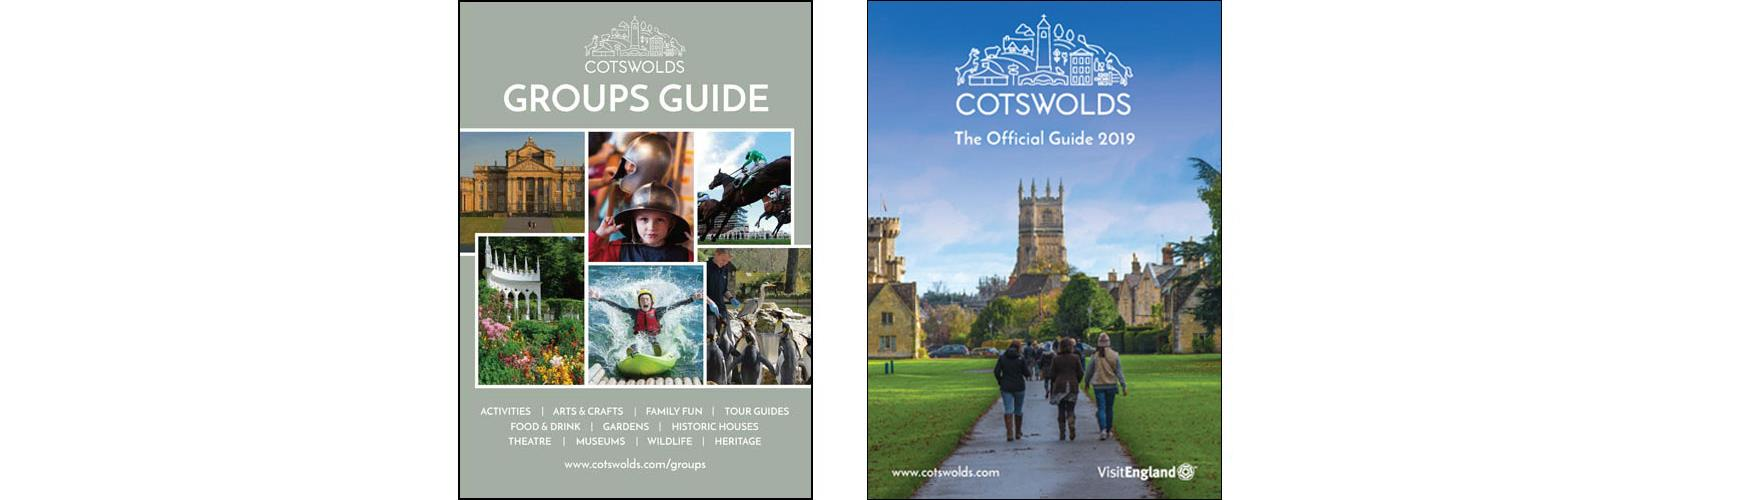 Marketing and advertising opportunities with Cotswolds Tourism